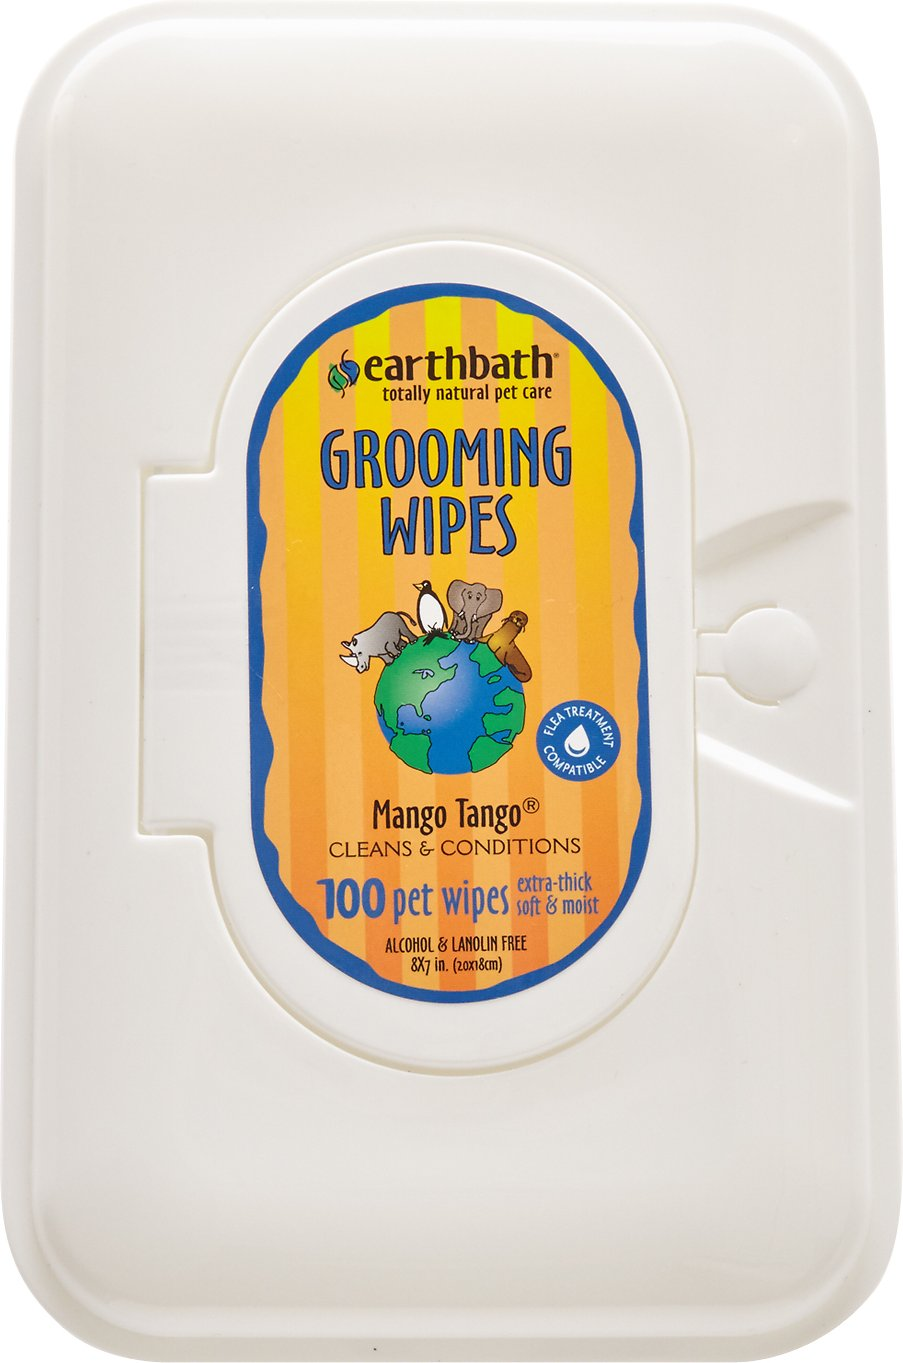 Earthbath Mango Tango Grooming Wipes for Dogs & Cats, 100-count